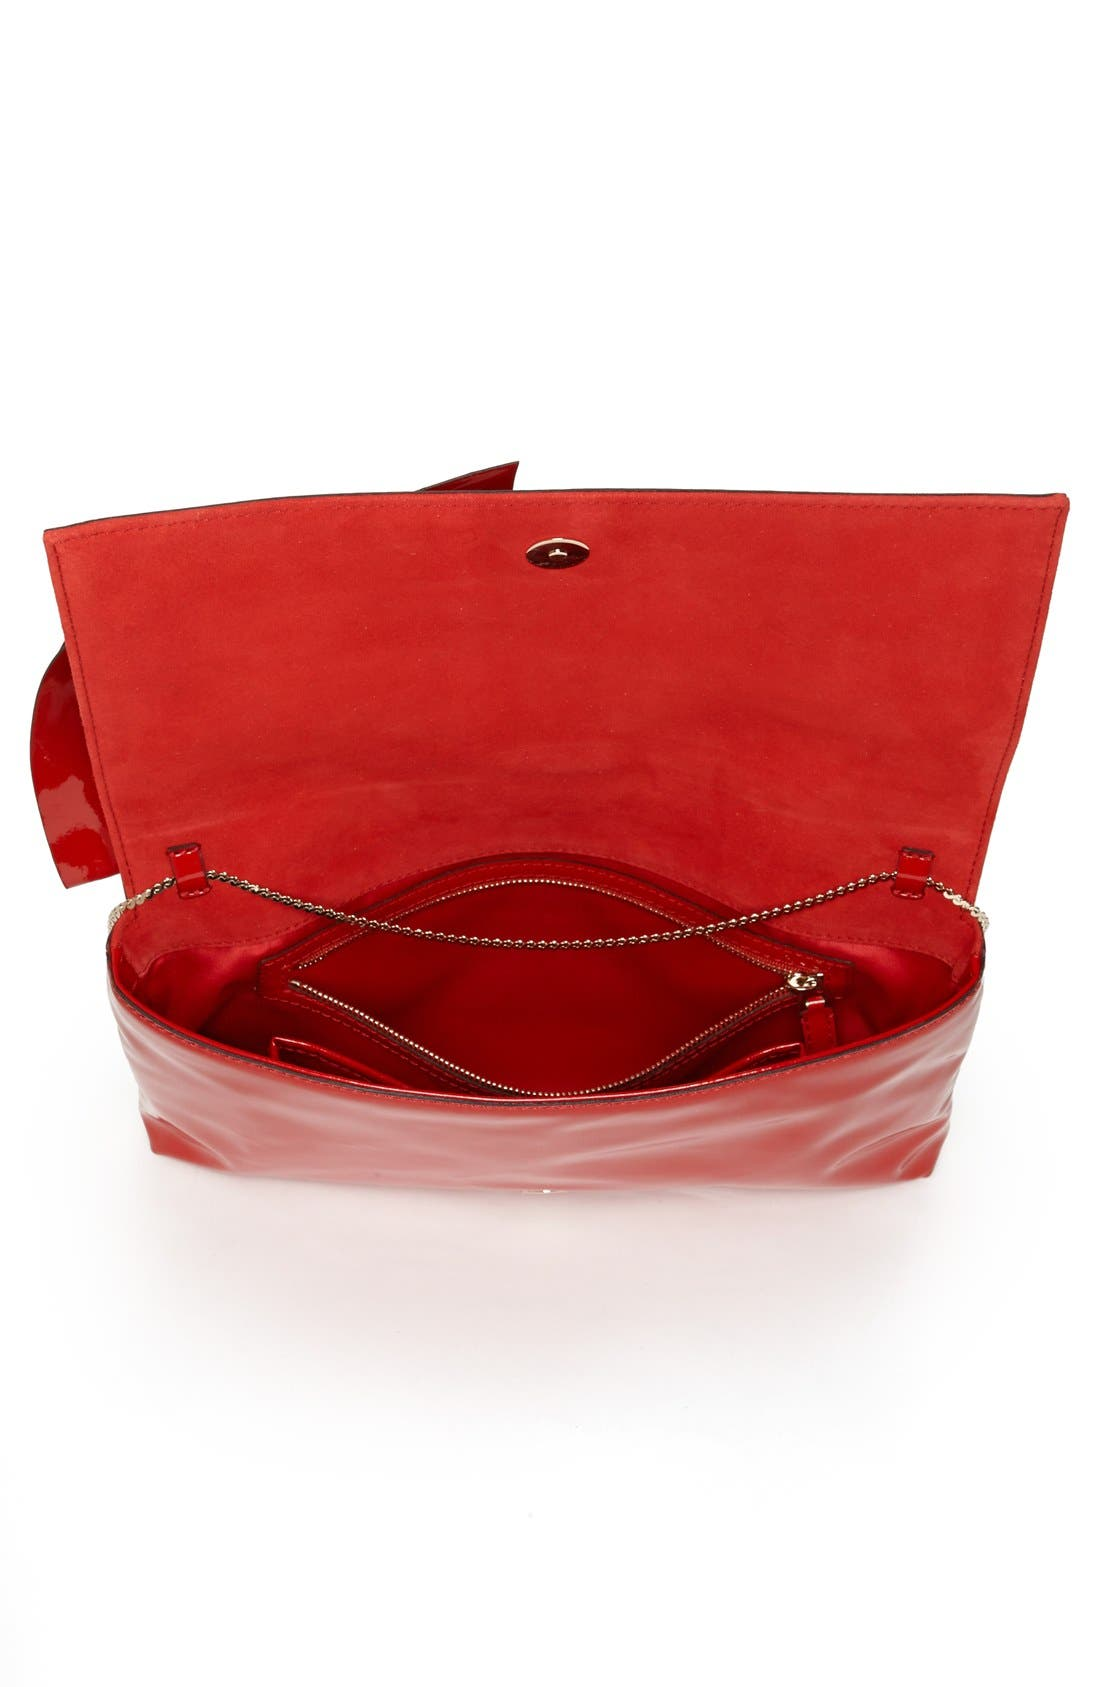 Alternate Image 3  - Valentino 'Lacca' Flap Clutch